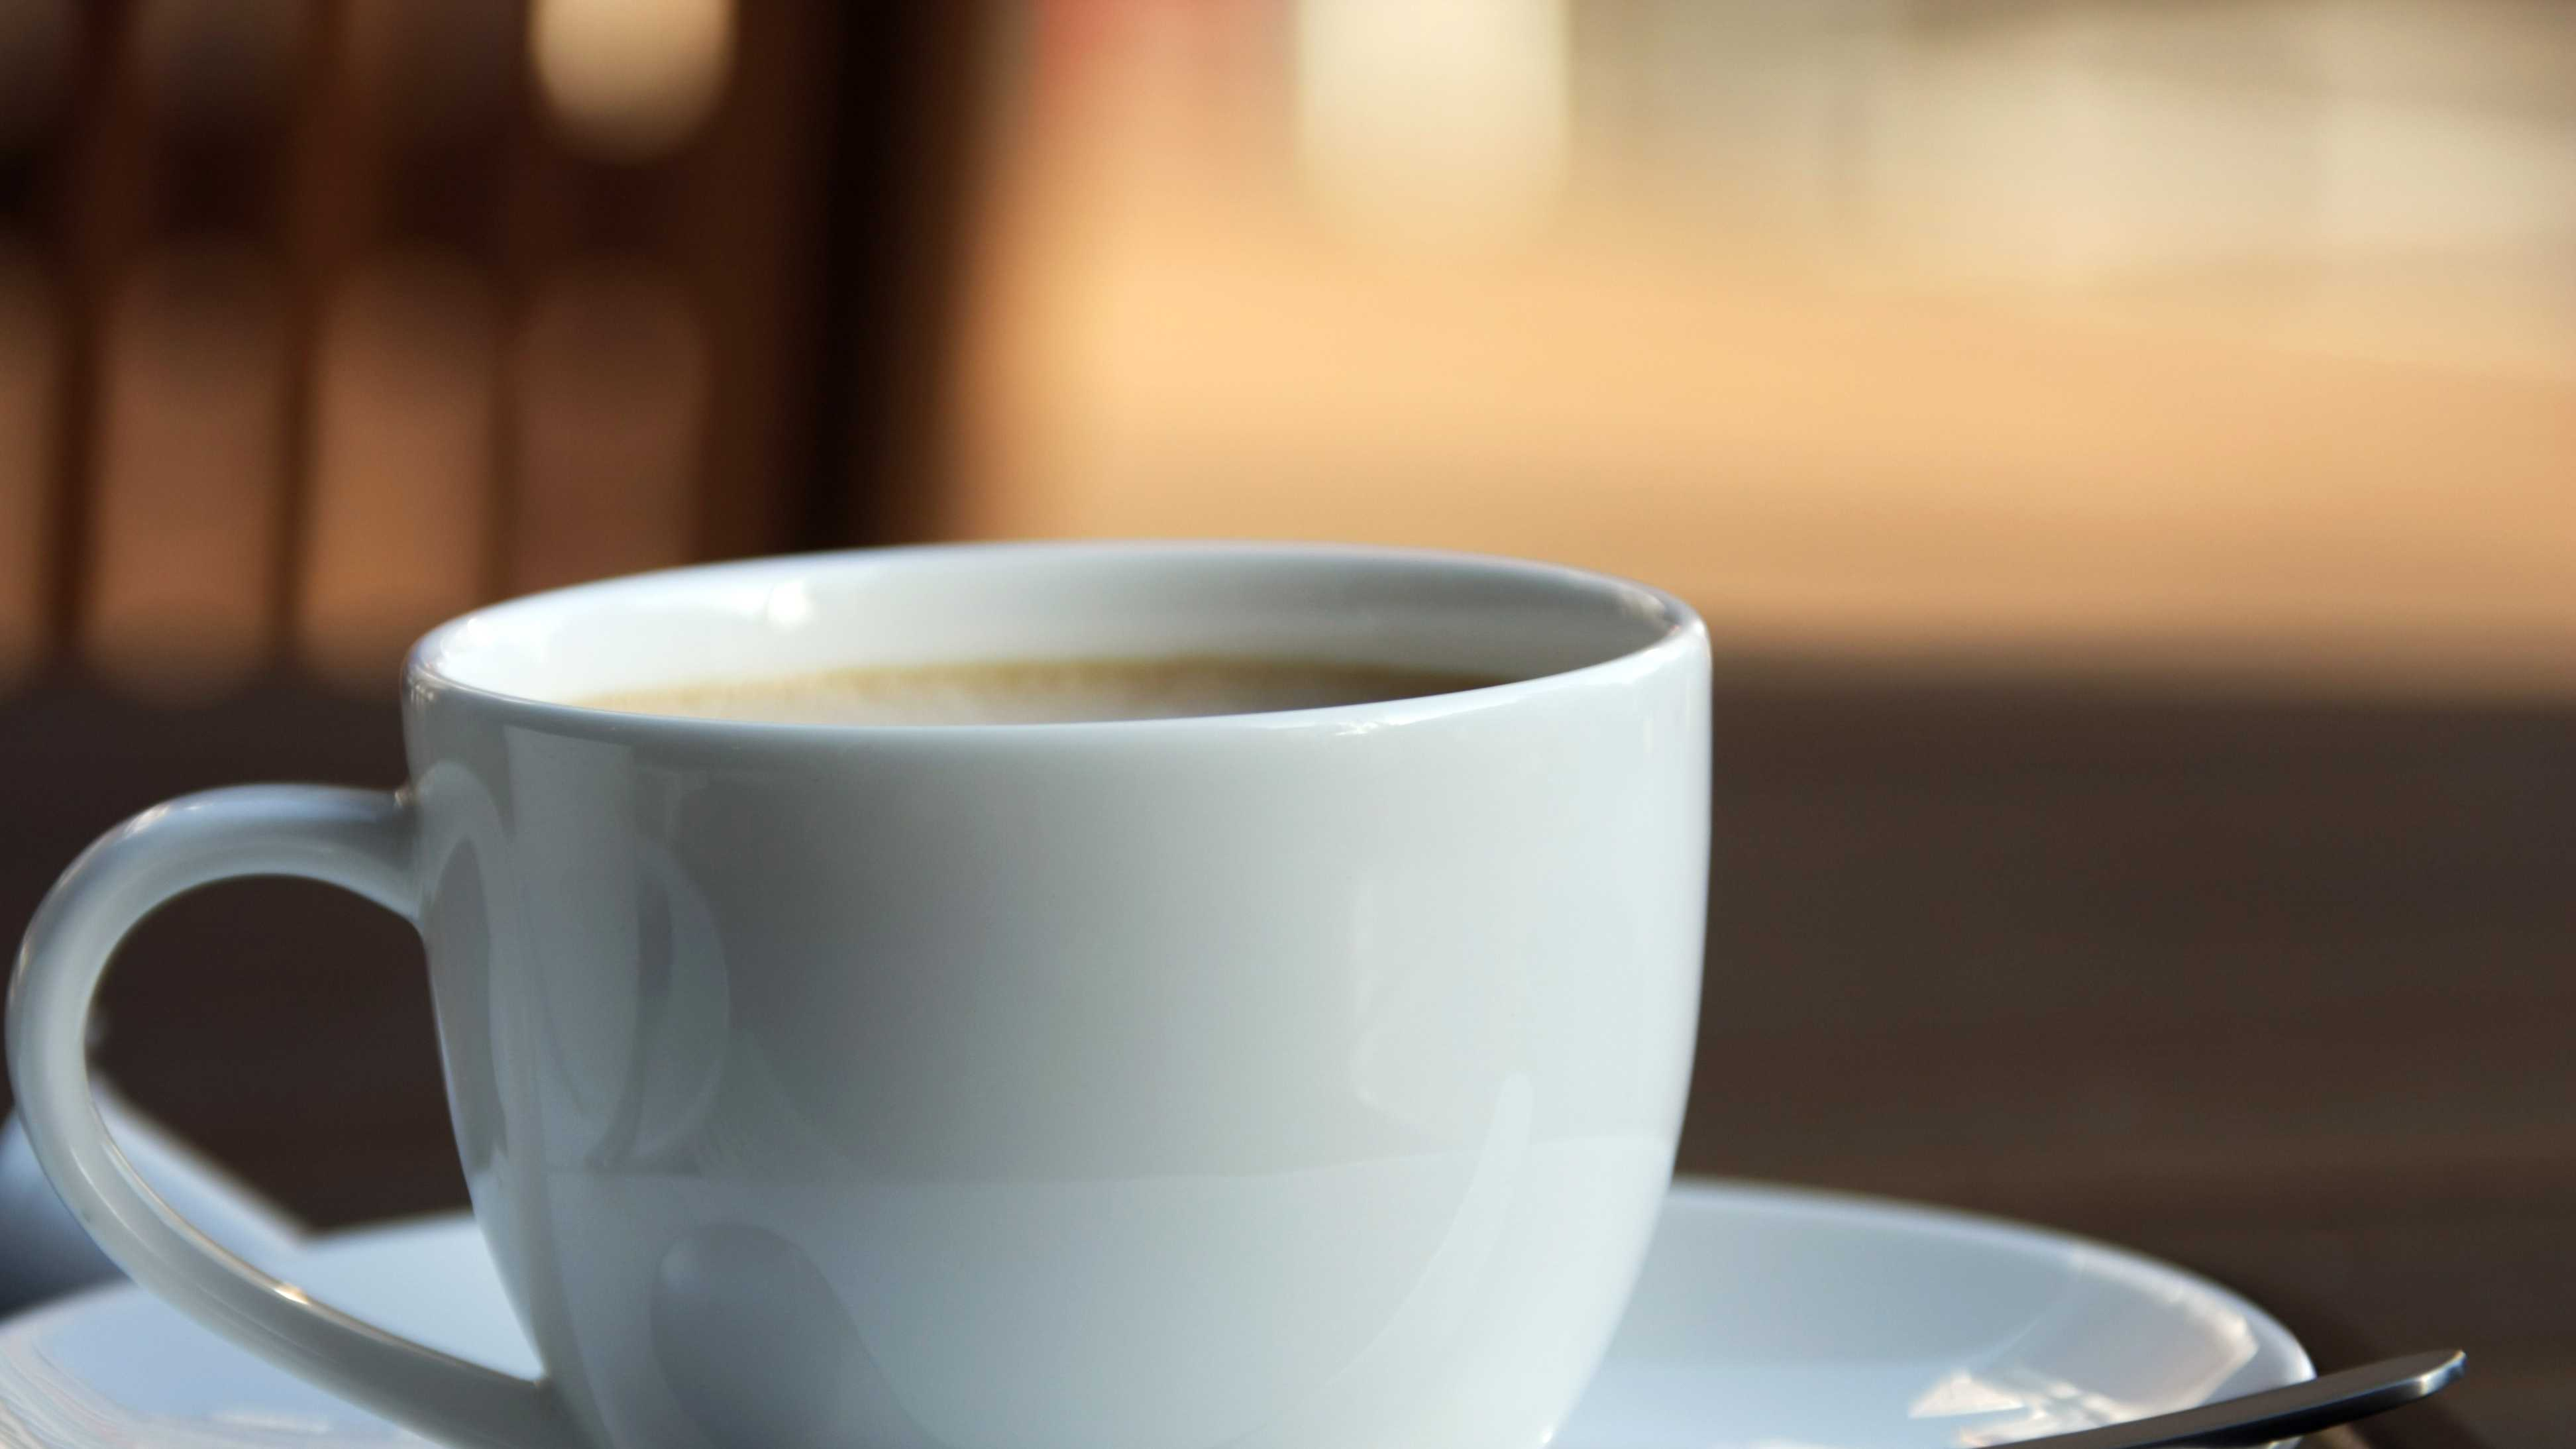 Avoid caffeine or alcohol. They increase blood flow to the skin and increase your risk of dehydration. Source: webmd.com